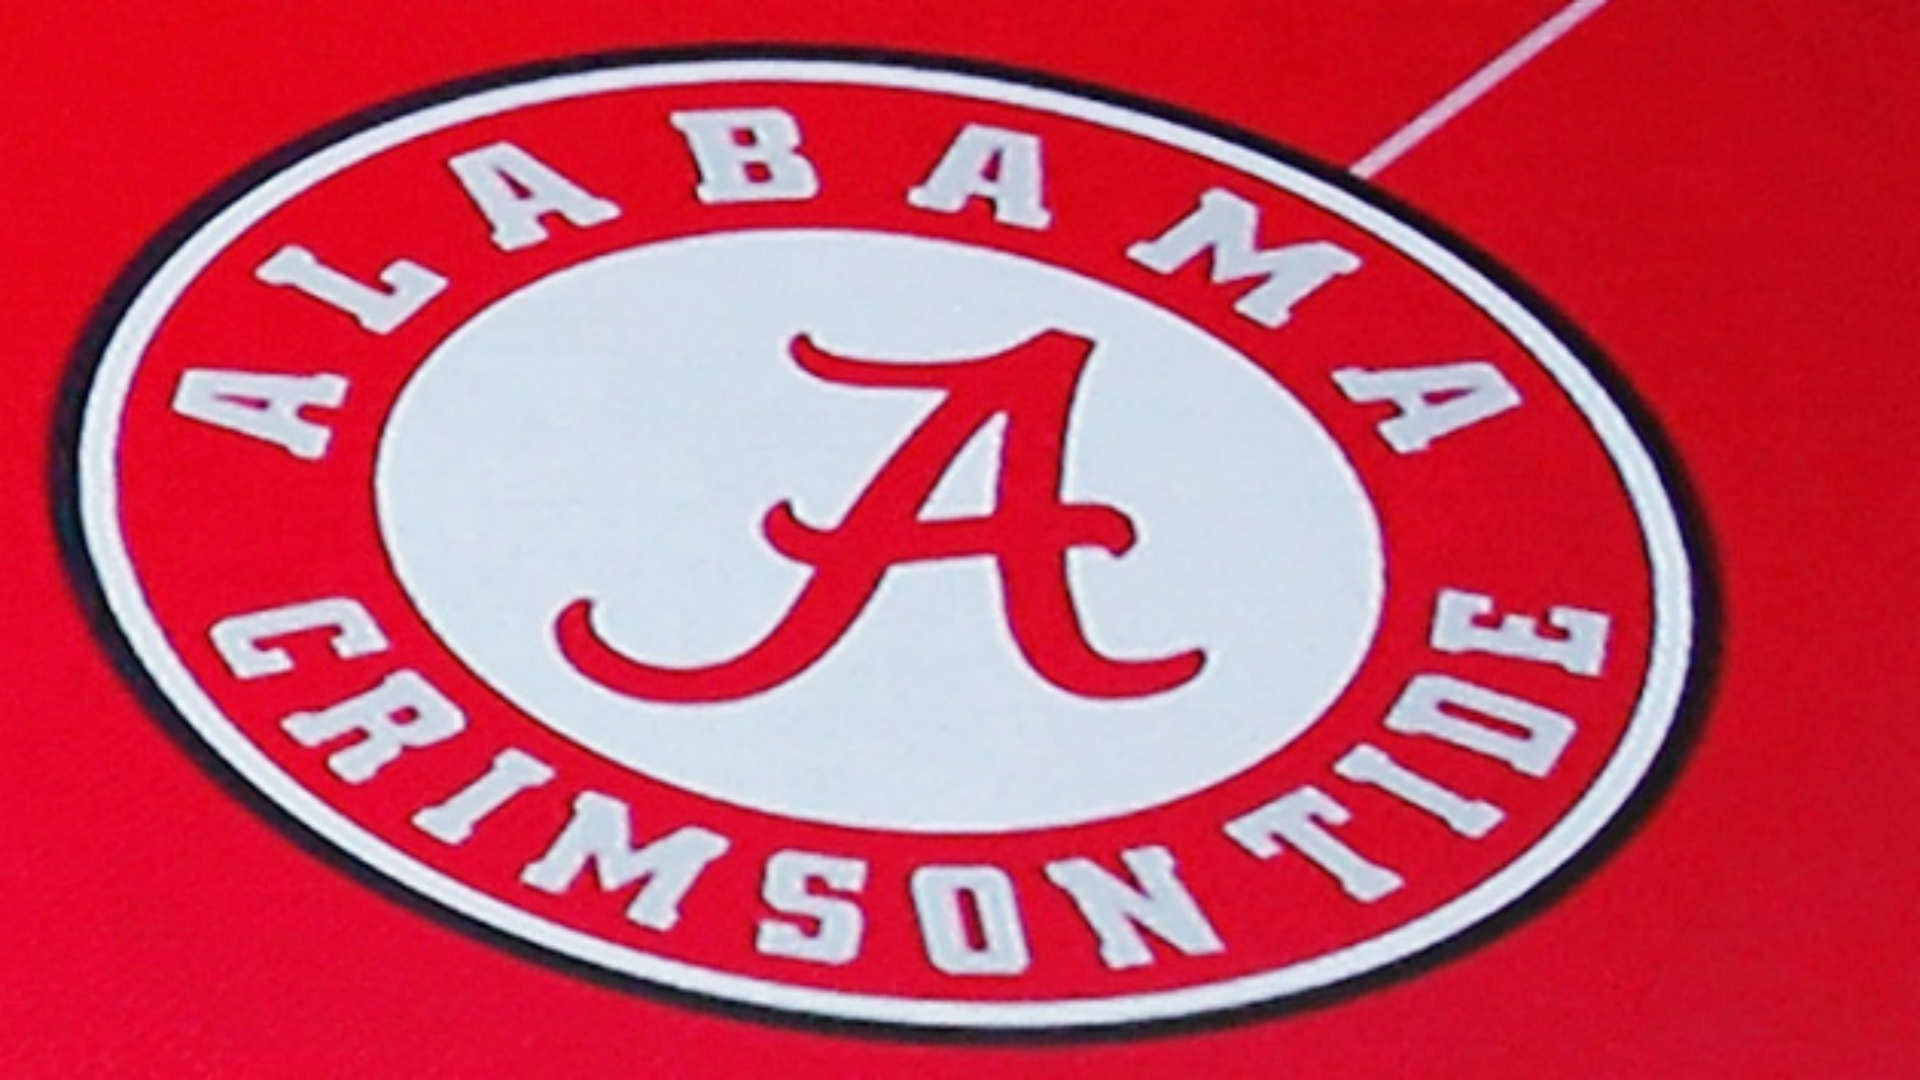 Crimson Tide baseball coach Goff fired after first season